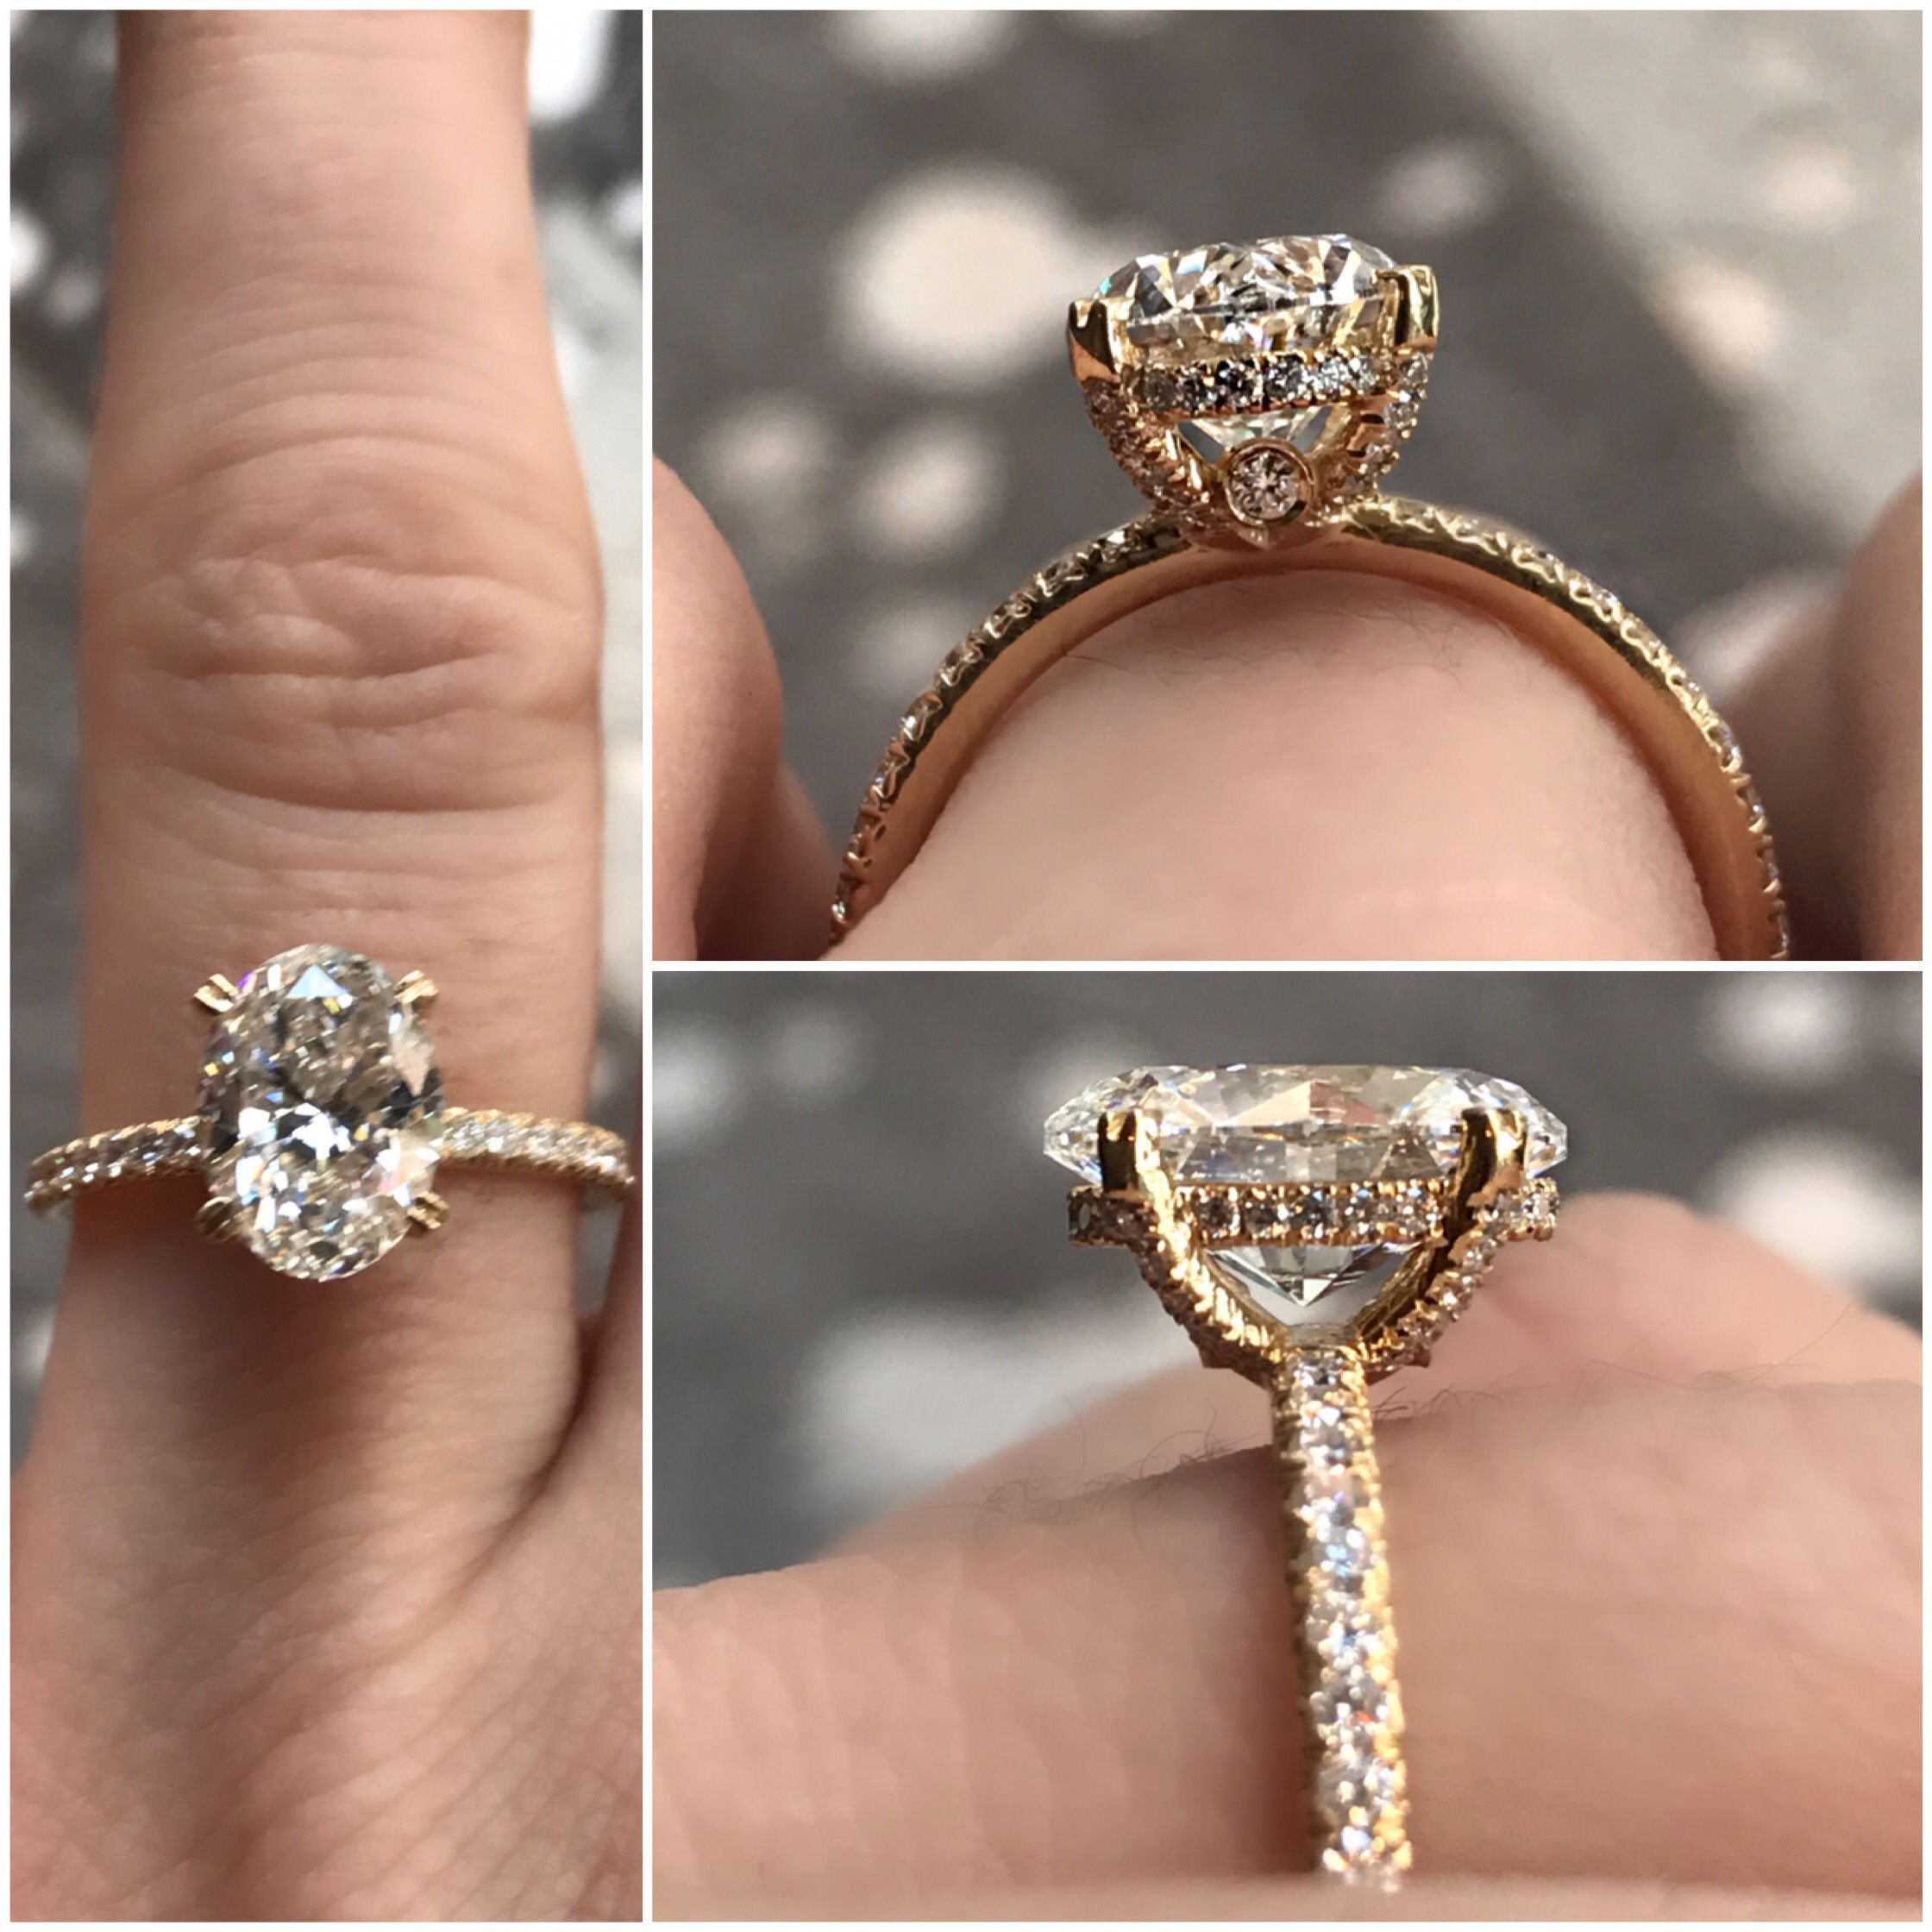 Oval diamond engagement ring vintage inspired hand crafted made in new york